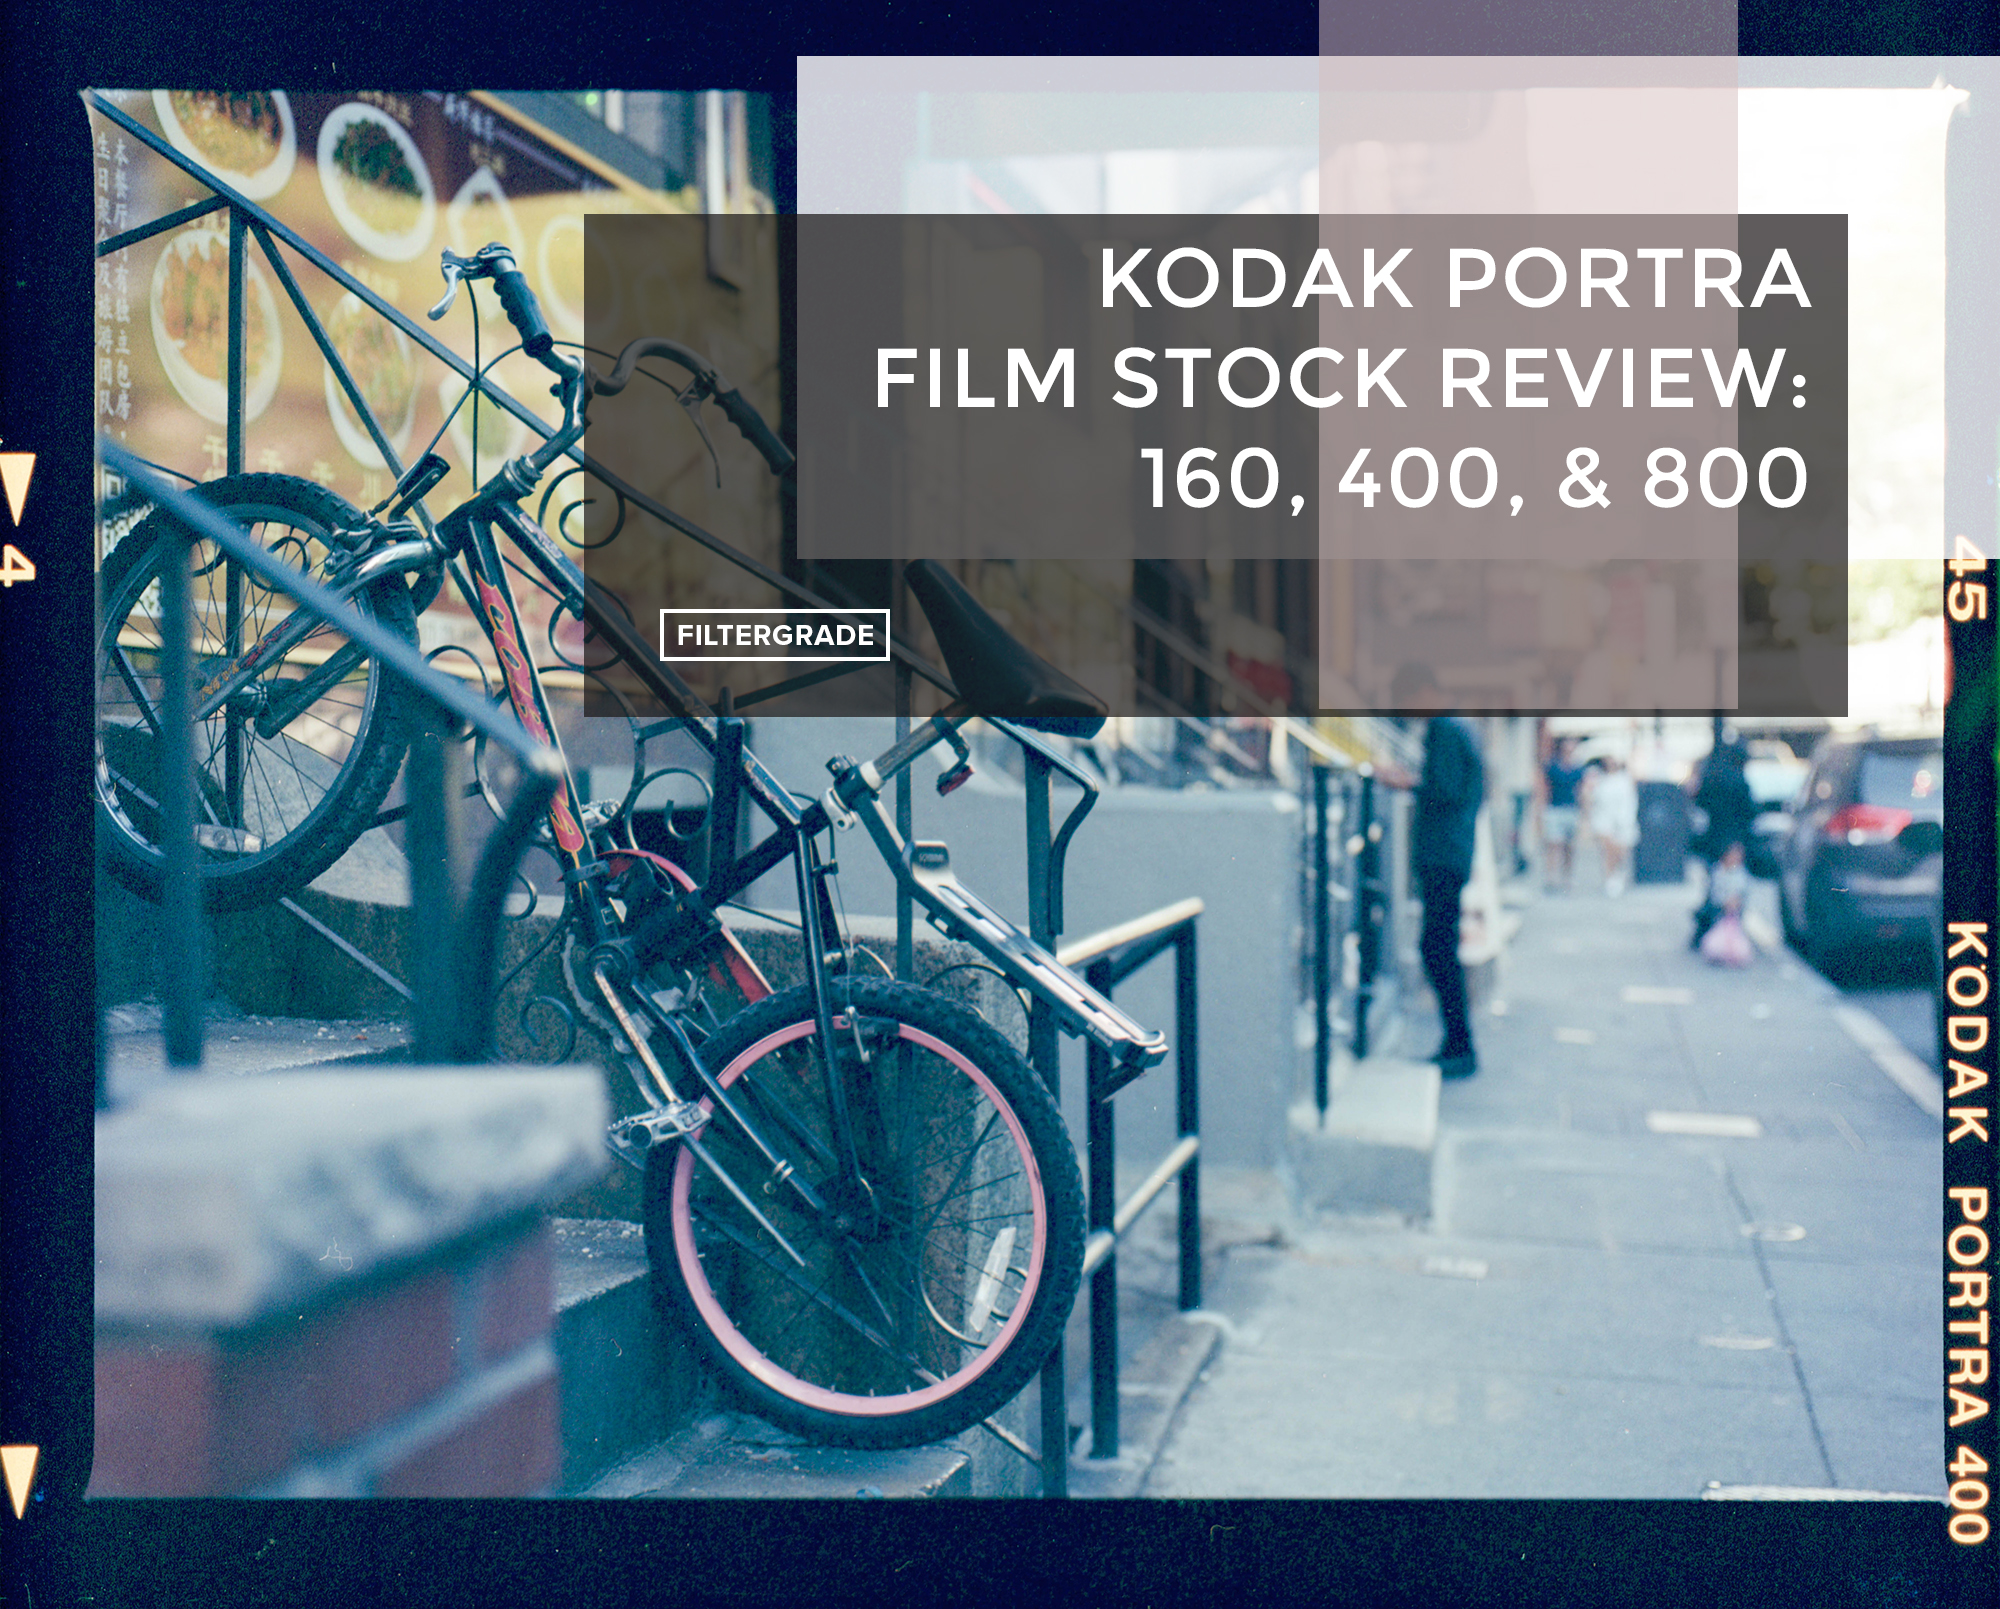 Kodak Portra Film Stock Review: 160, 400, & 800 - FilterGrade